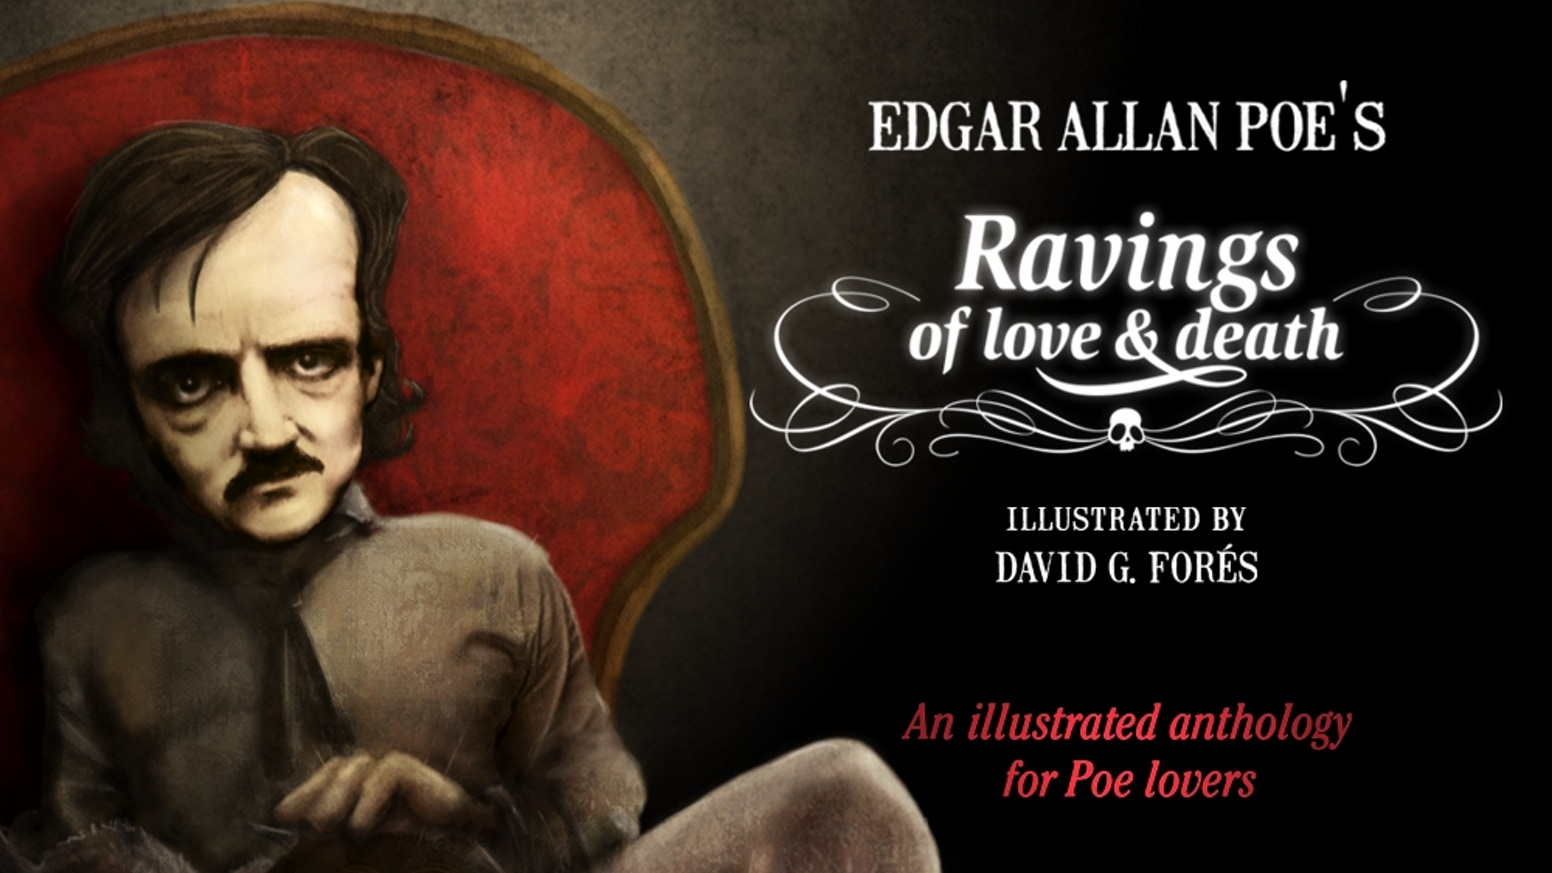 An anthology for Edgar Allan Poe lovers, fully illustrated by David G. Forés. Two years of ravings in a deluxe & limited Ed. Art Book.